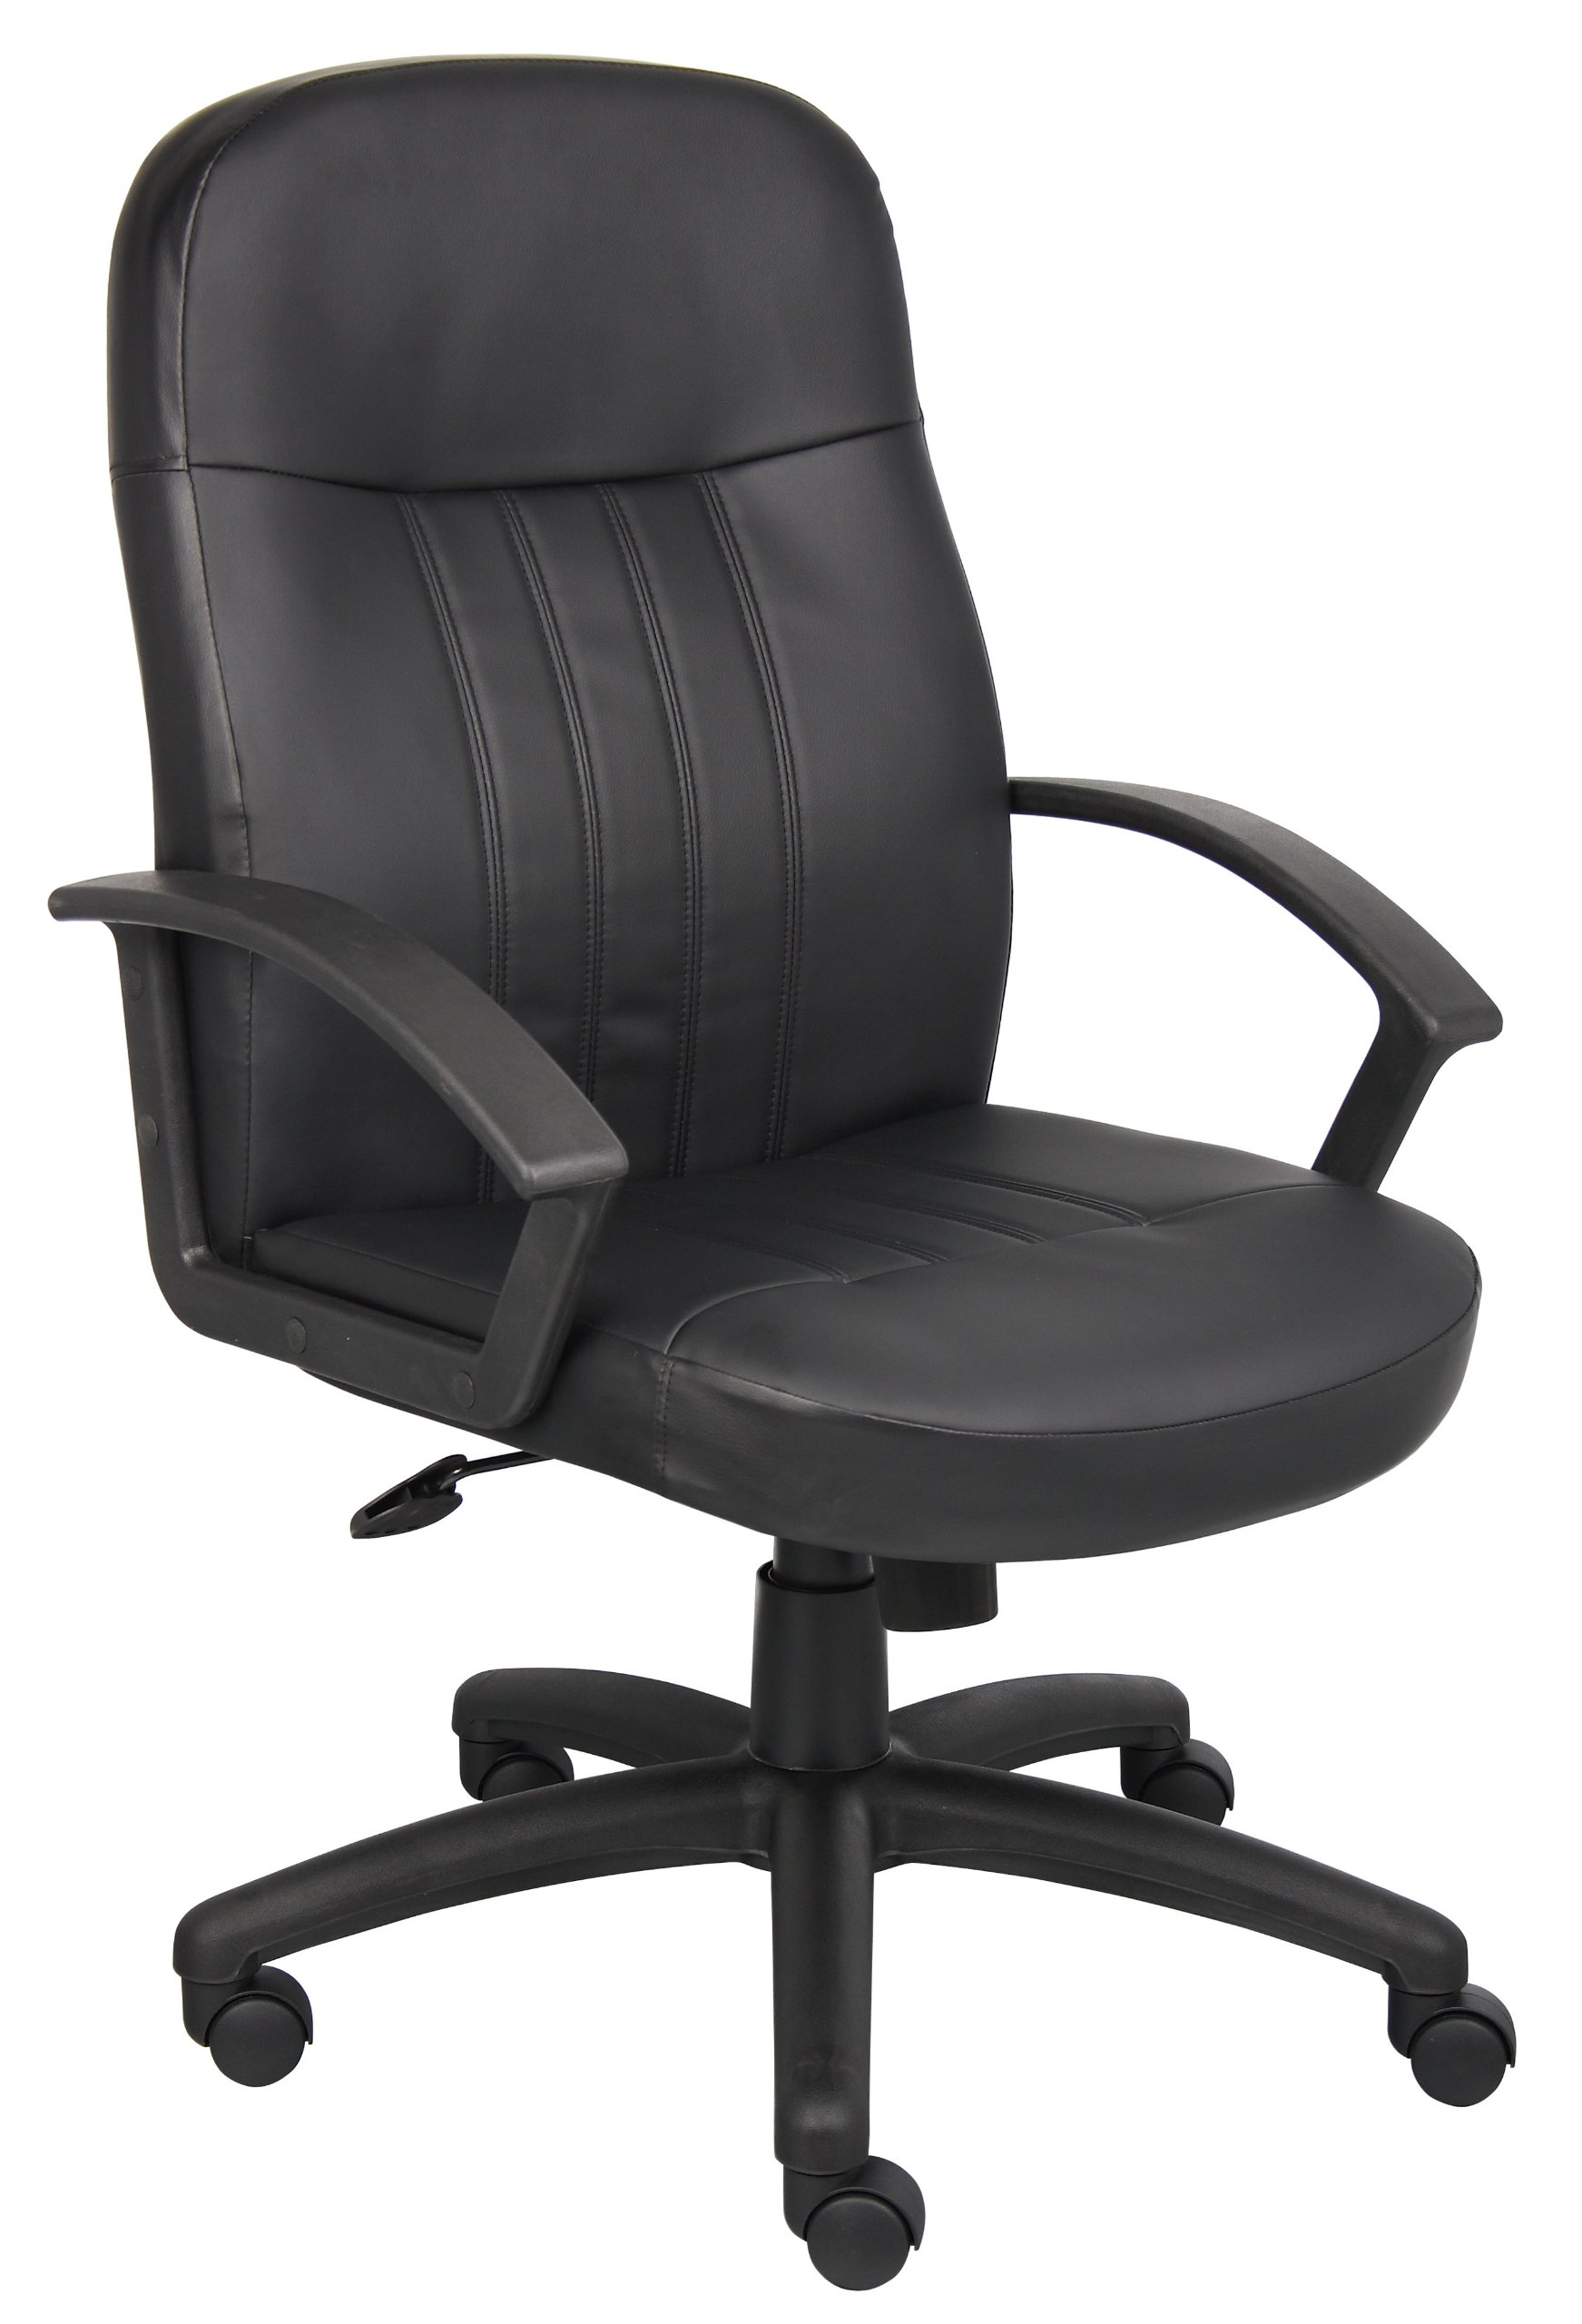 Boss Office Products B8106 Executive Leather Budged Chair in Black